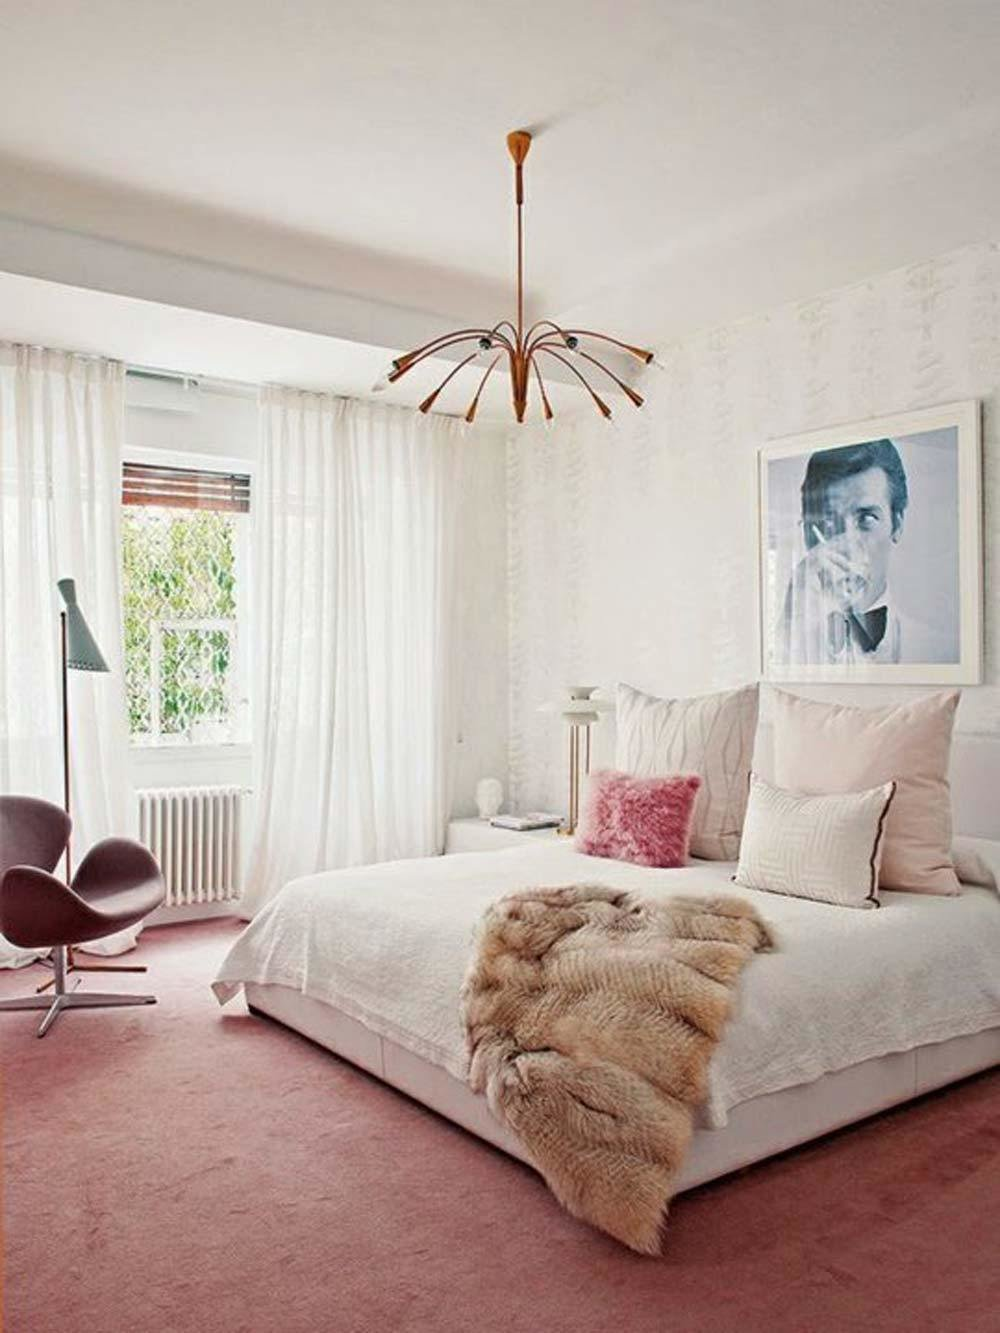 Best 10 Perfect Pink Bedrooms – Design Sponge With Pictures